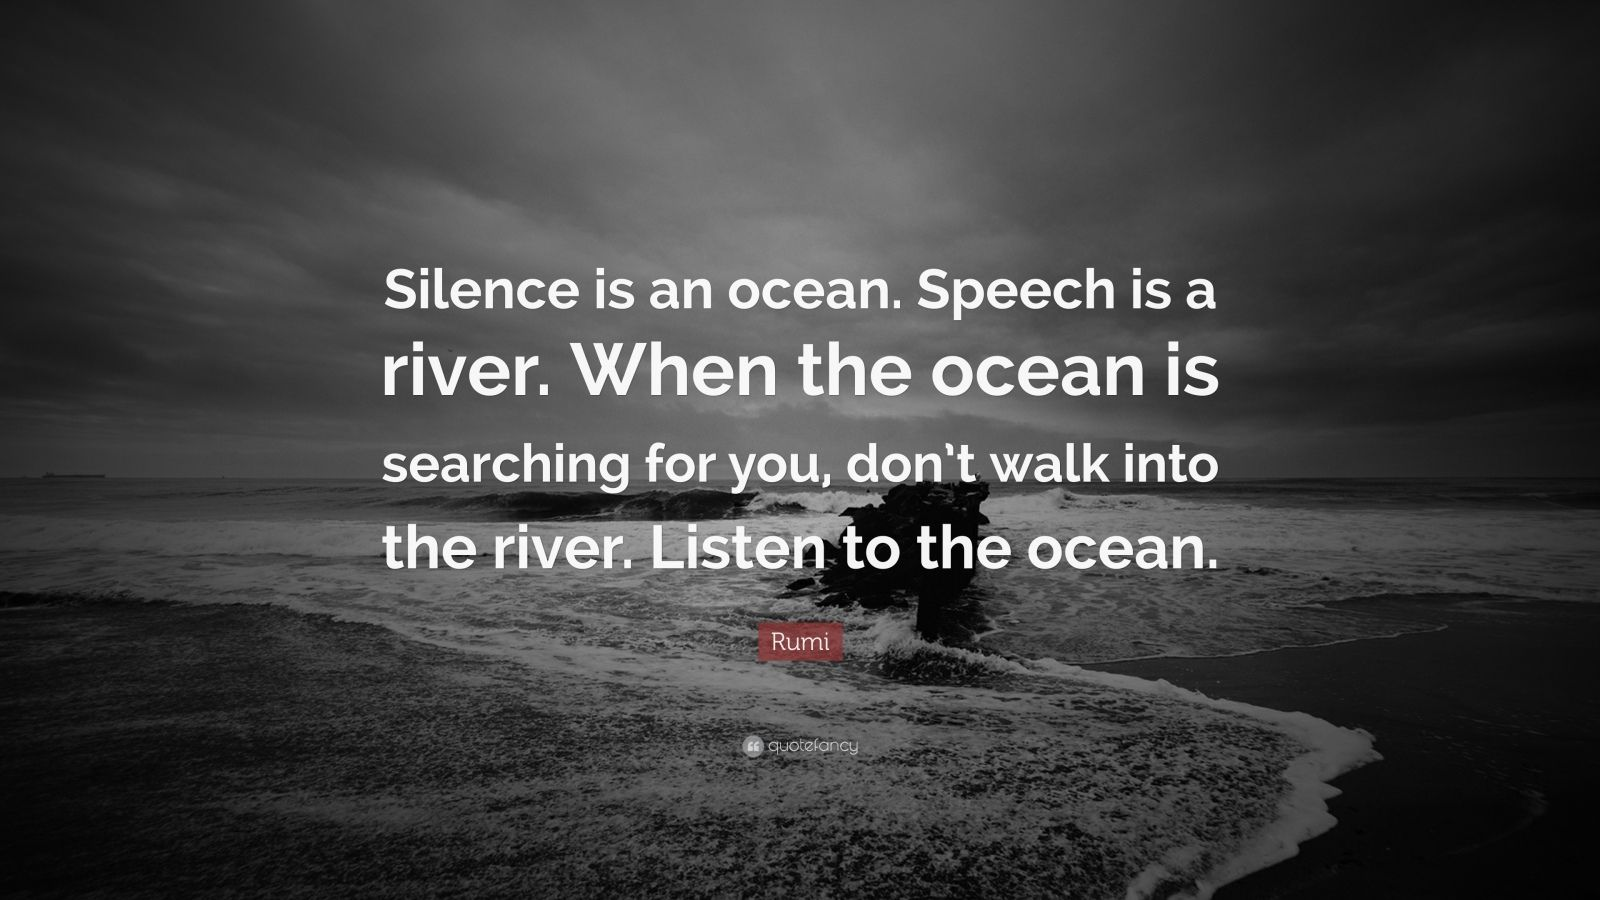 """Rumi Quote: """"Silence is an ocean. Speech is a river. When the ocean is searching for you, don't walk into the river. Listen to the ocean."""""""